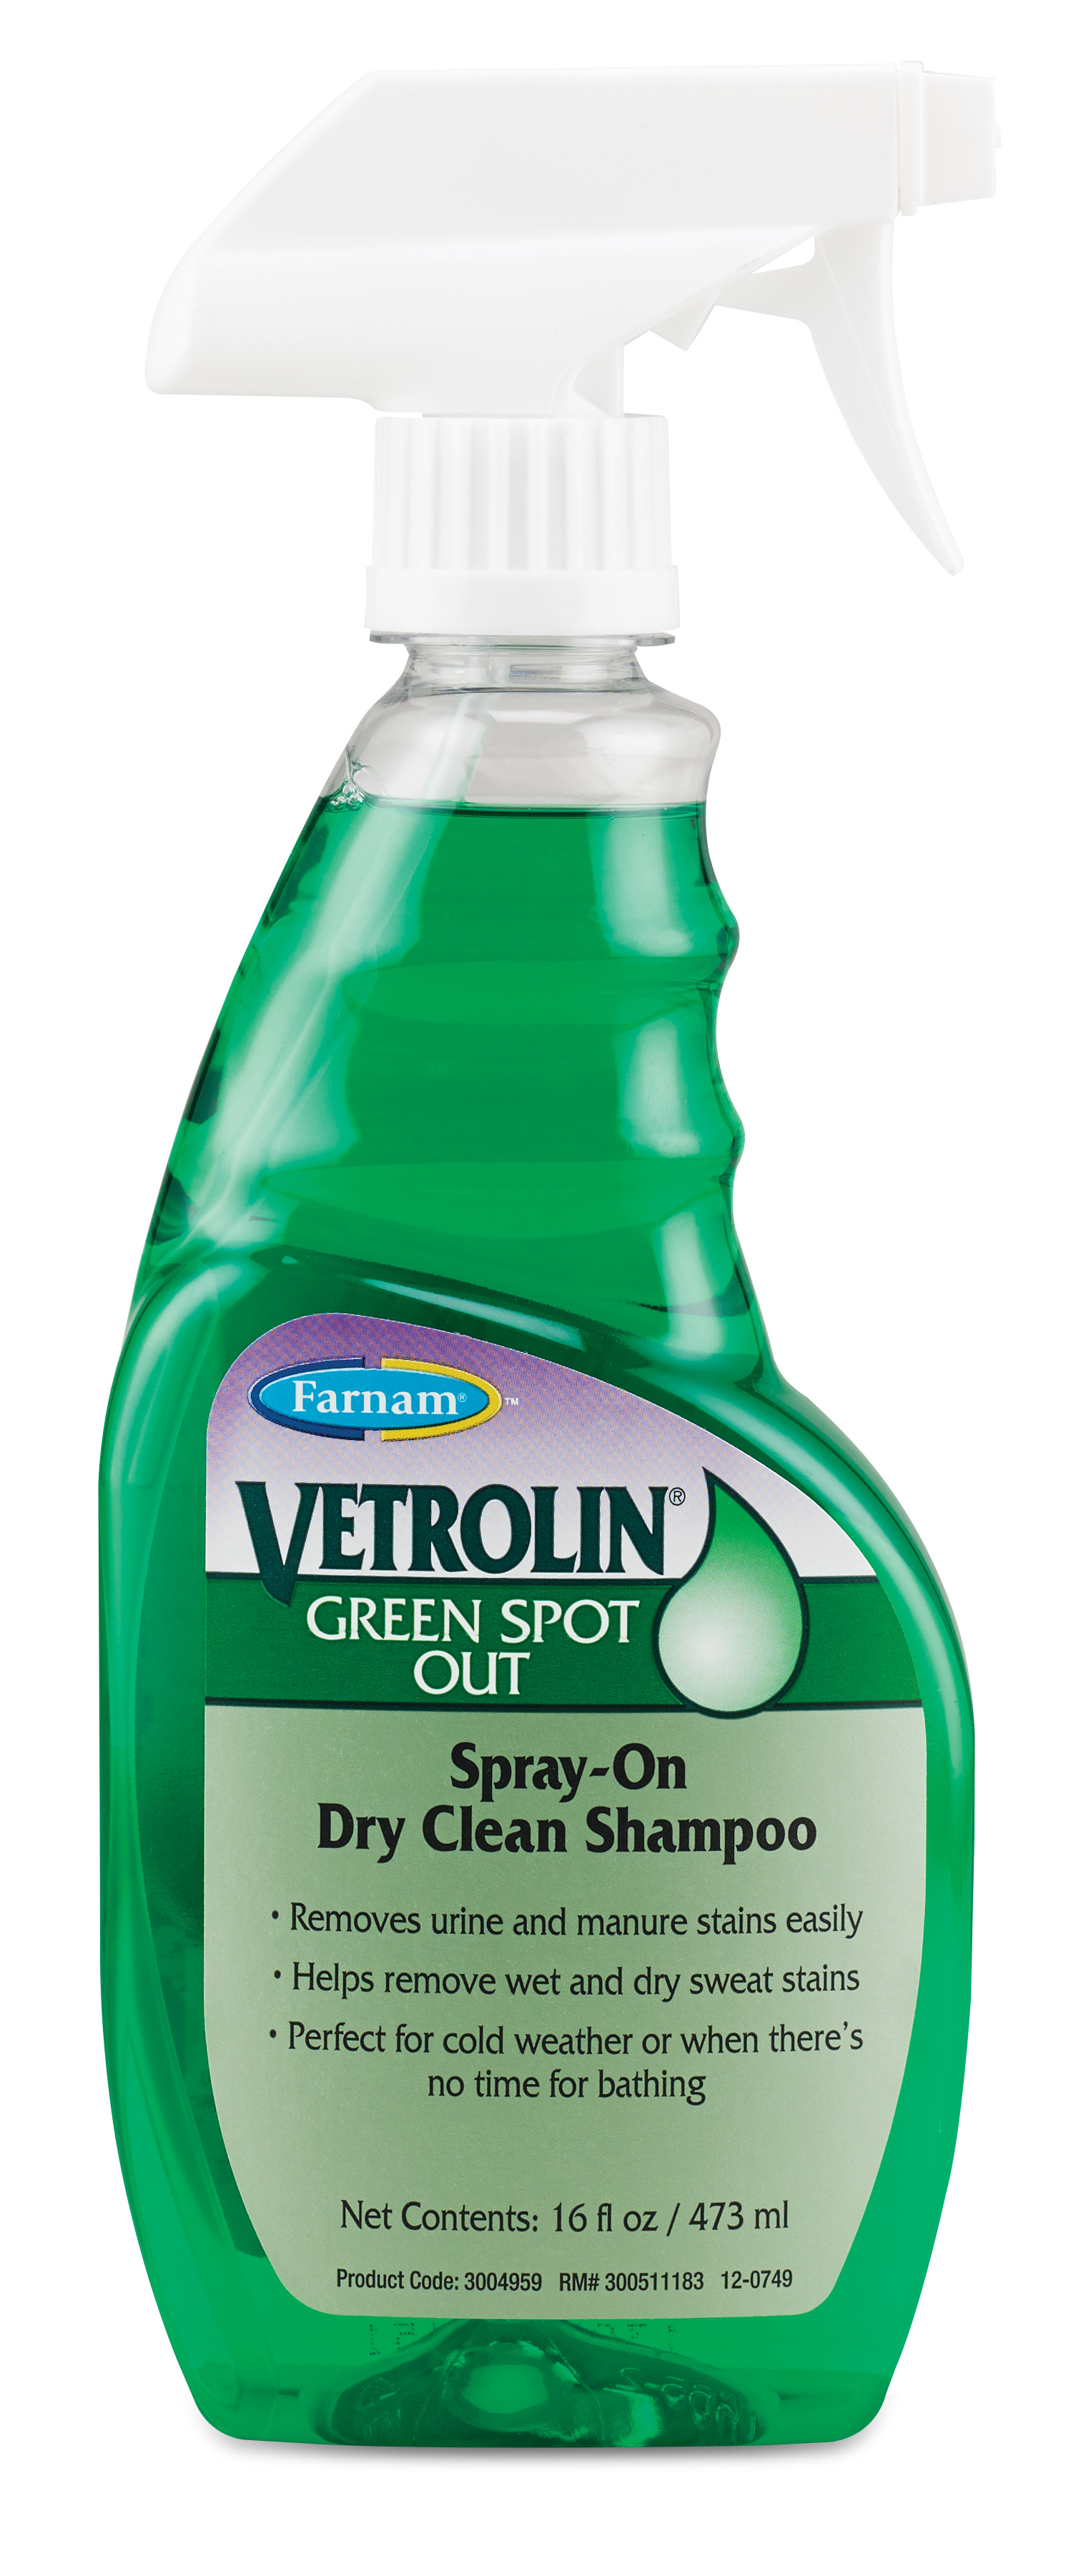 VETROLIN® GREEN SPOT OUT 473 ml